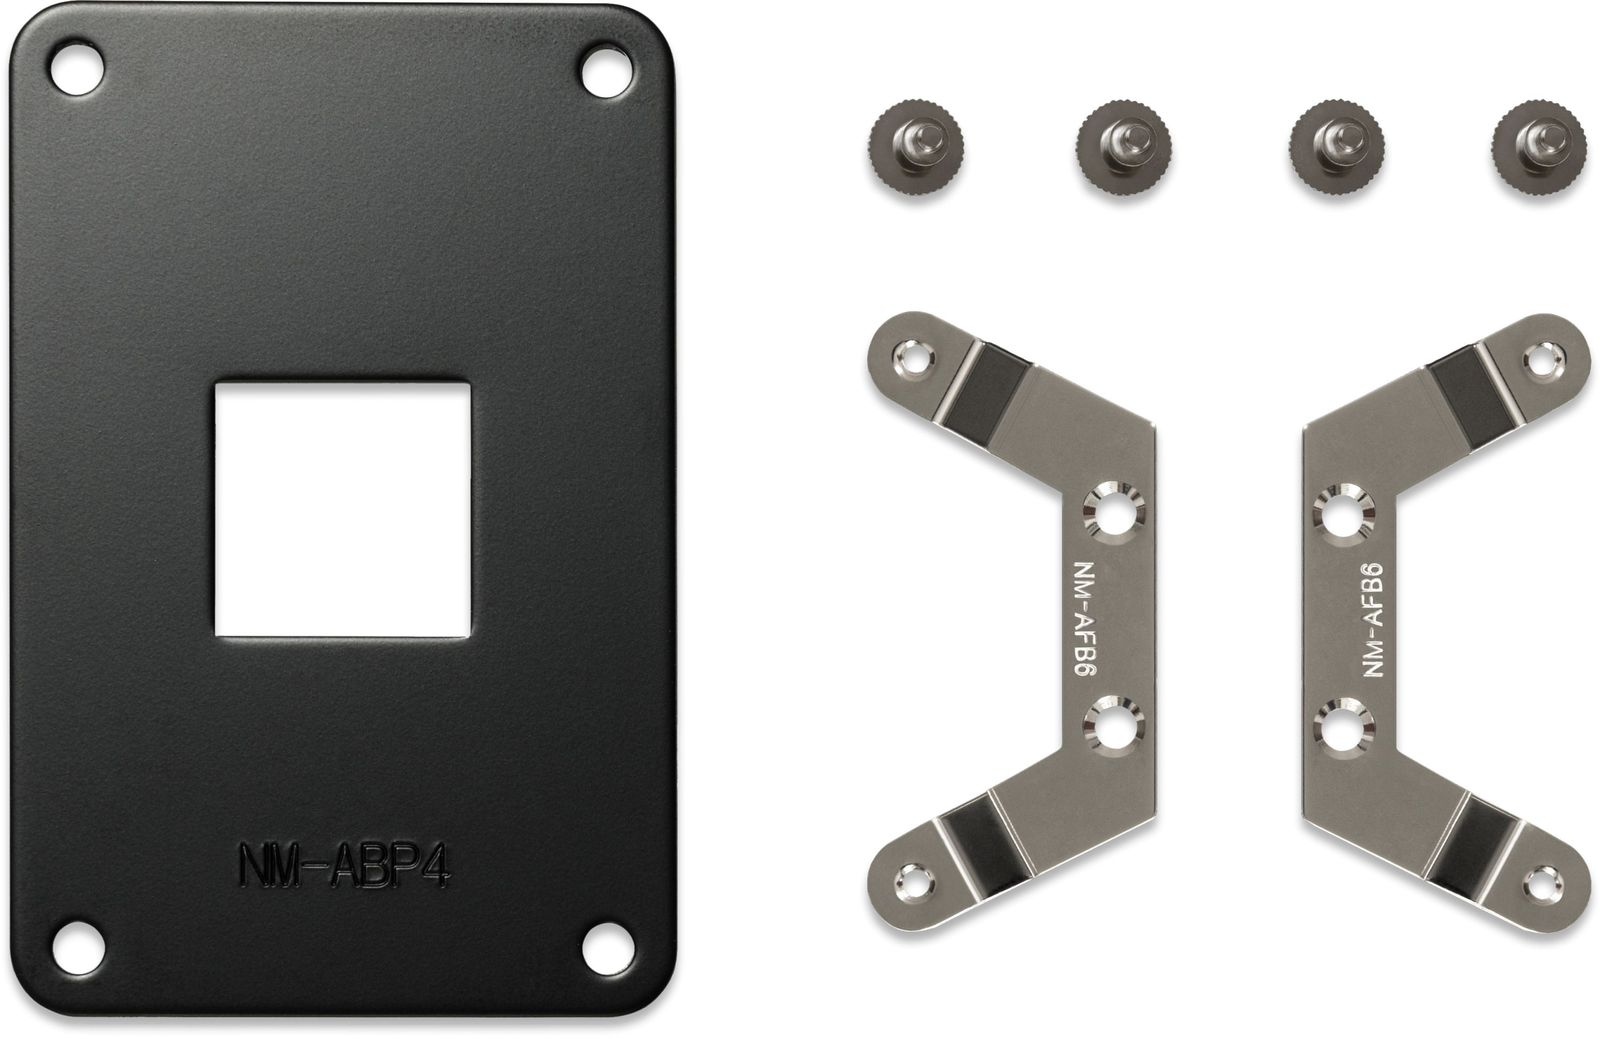 Be Quiet AMD AM4 Mounting Kit image